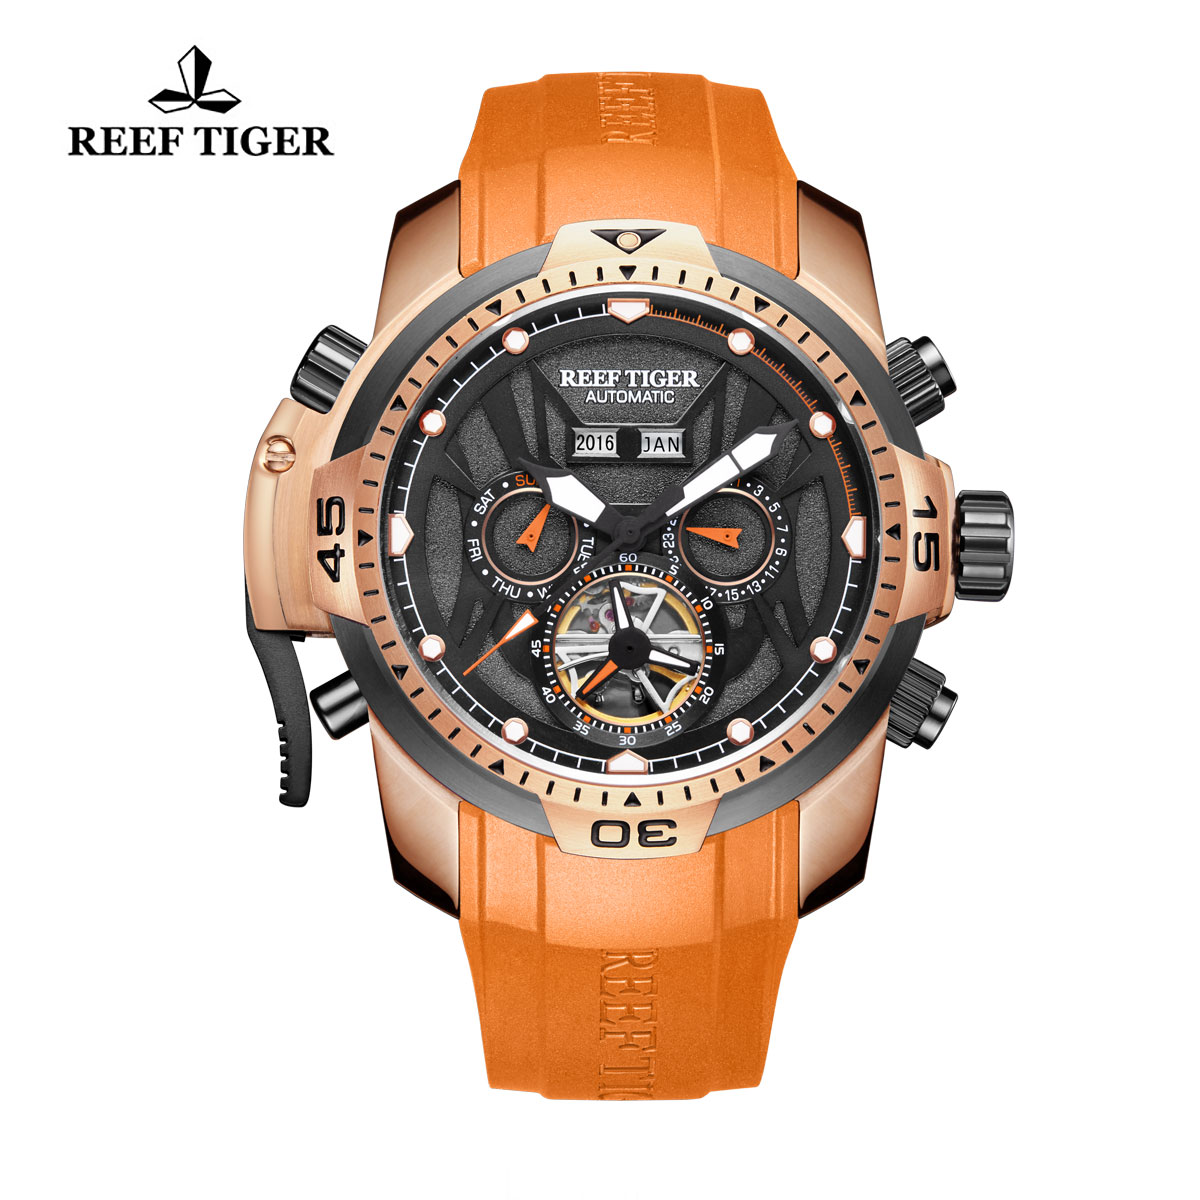 Reef Tiger Transformer Sport Watches Complicated Watch Rose Gold Case Orange Rubber RGA3532-PBOO